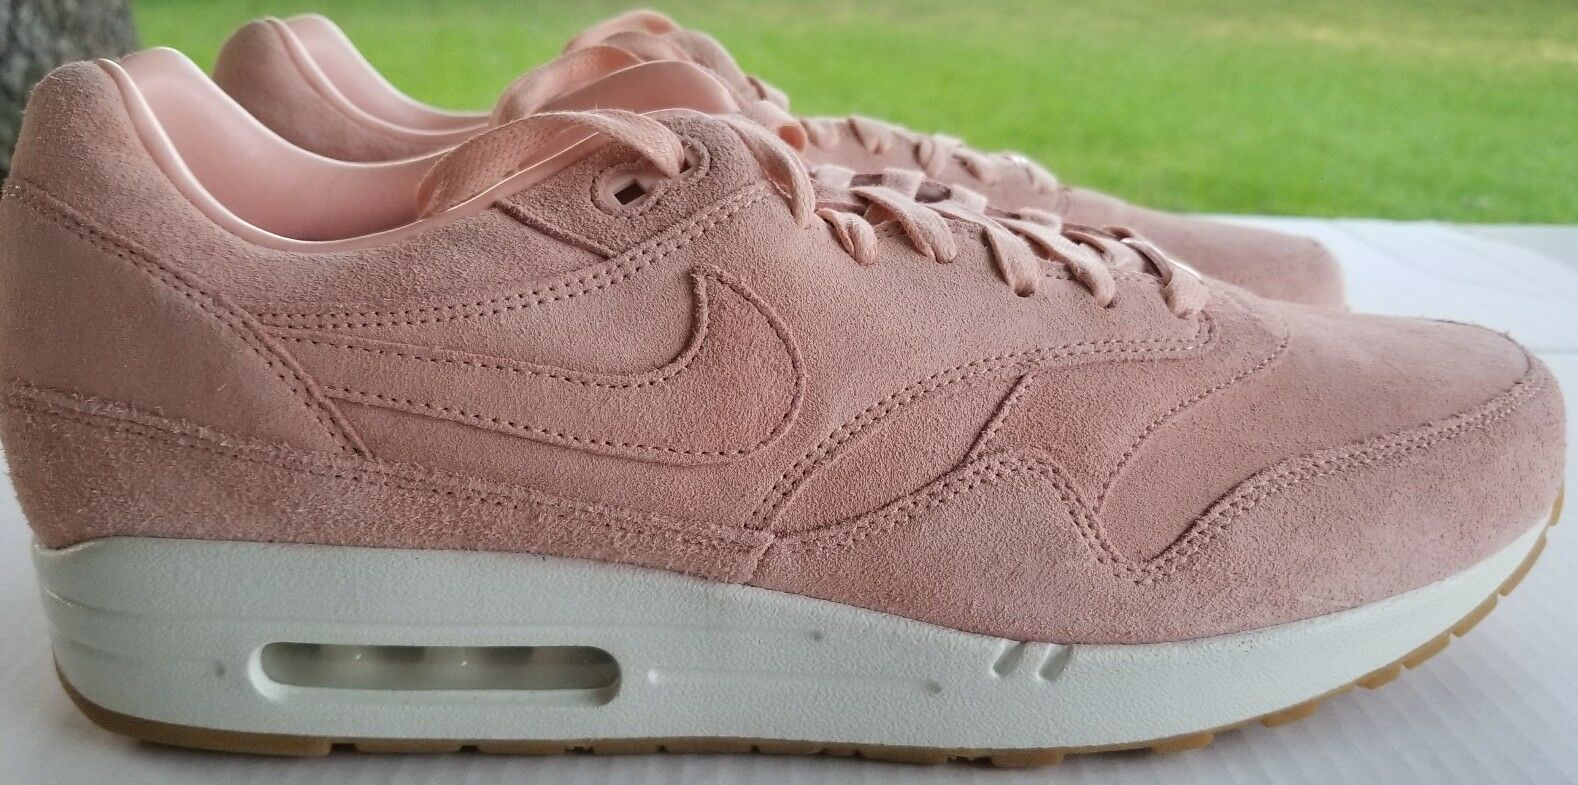 NIKE AIR MAX ONE PREMIUM ID PINK SUEDE SIZE 13 829357-993